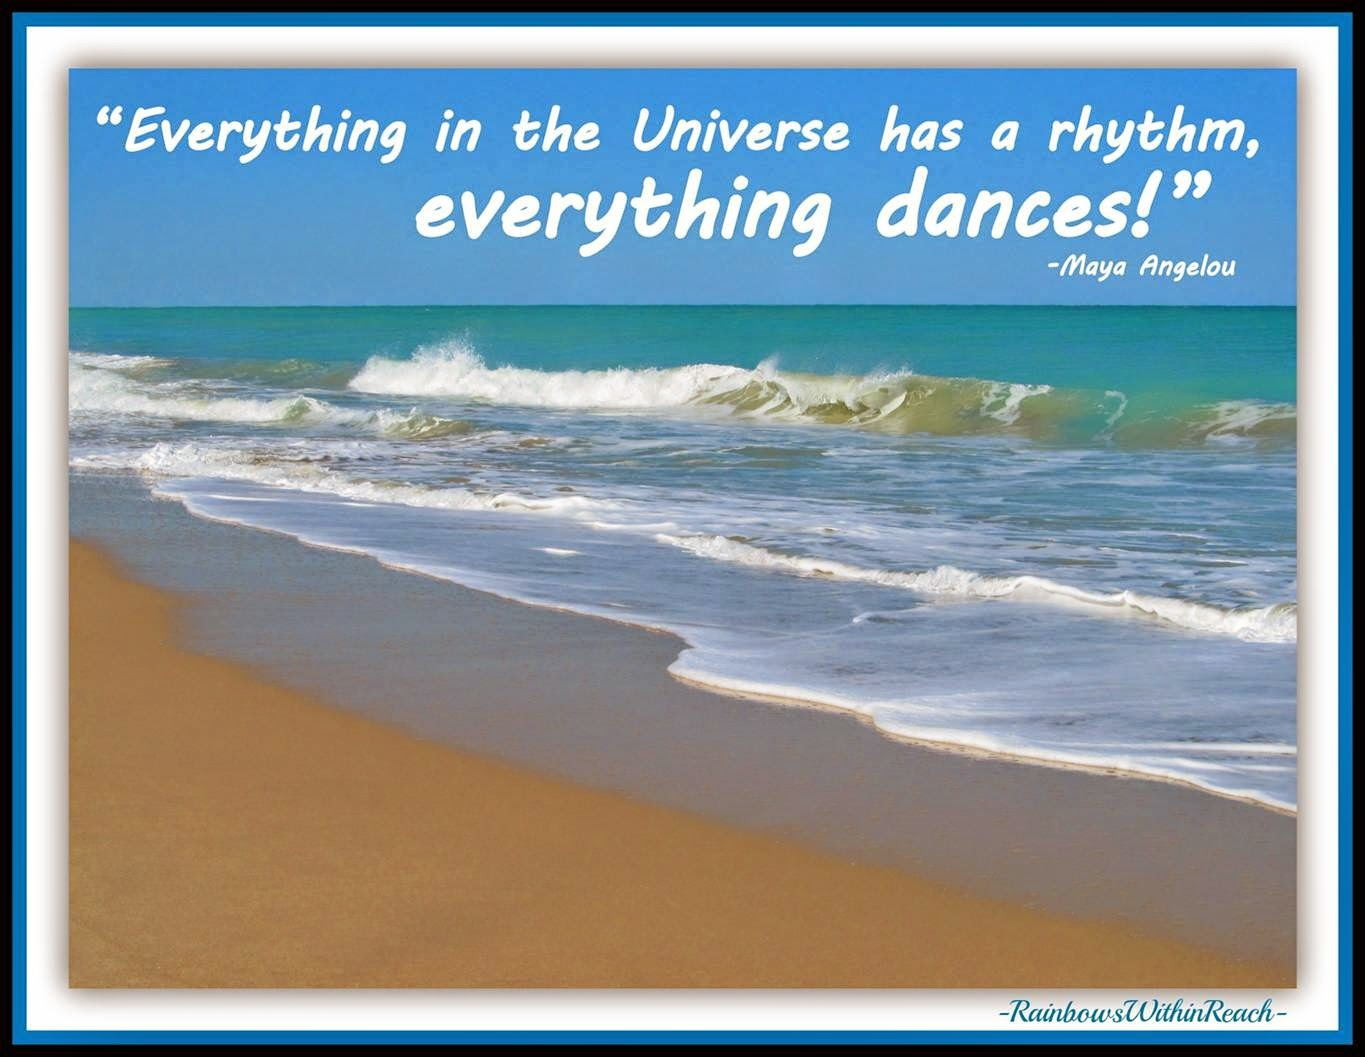 Maya Angelou quote on Dance (from Slideshare on Creativity by Debbie Clement)